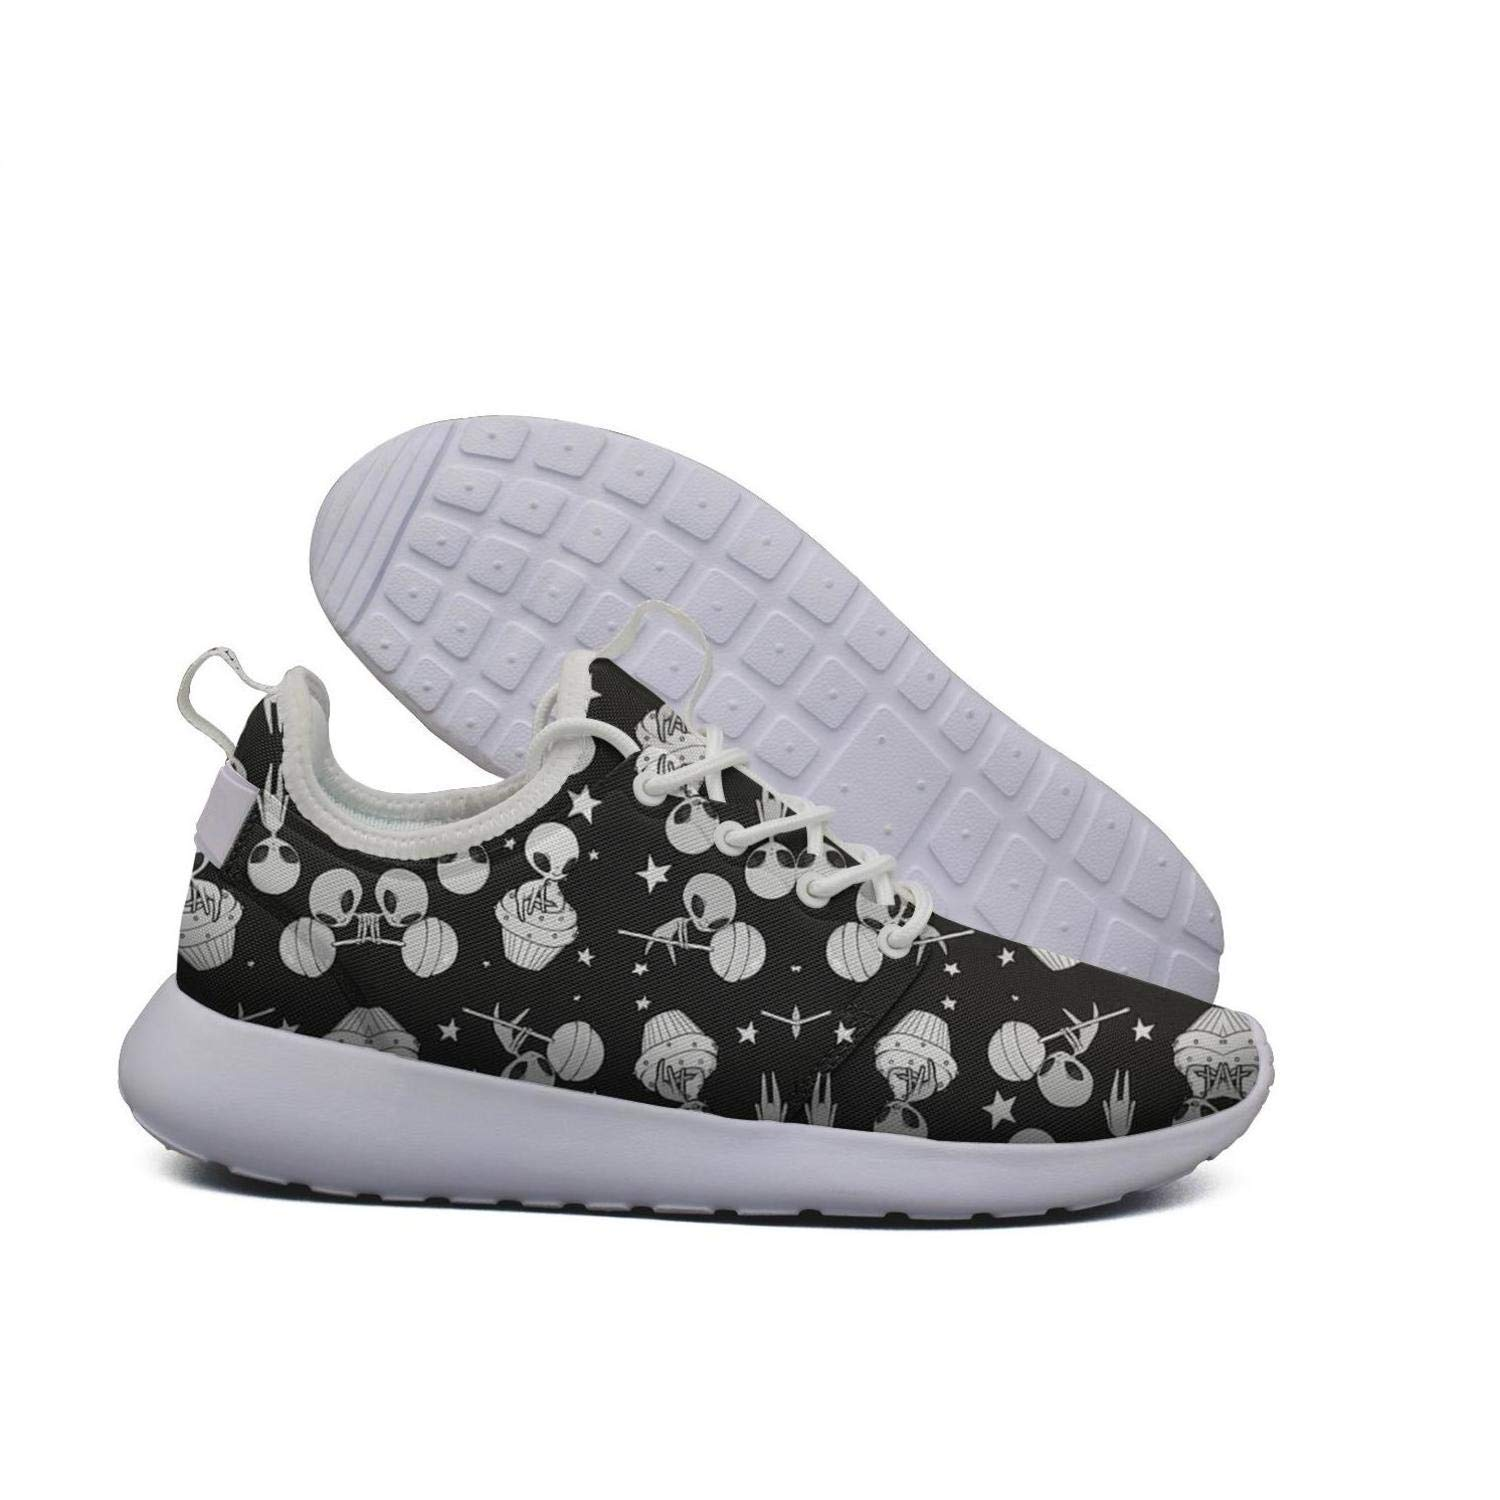 Lollipop Alien Stars UFO Ice Cream Food Desserts Ladies Sneakers for Women Sports Highly Breathable Running Shoes for Girls